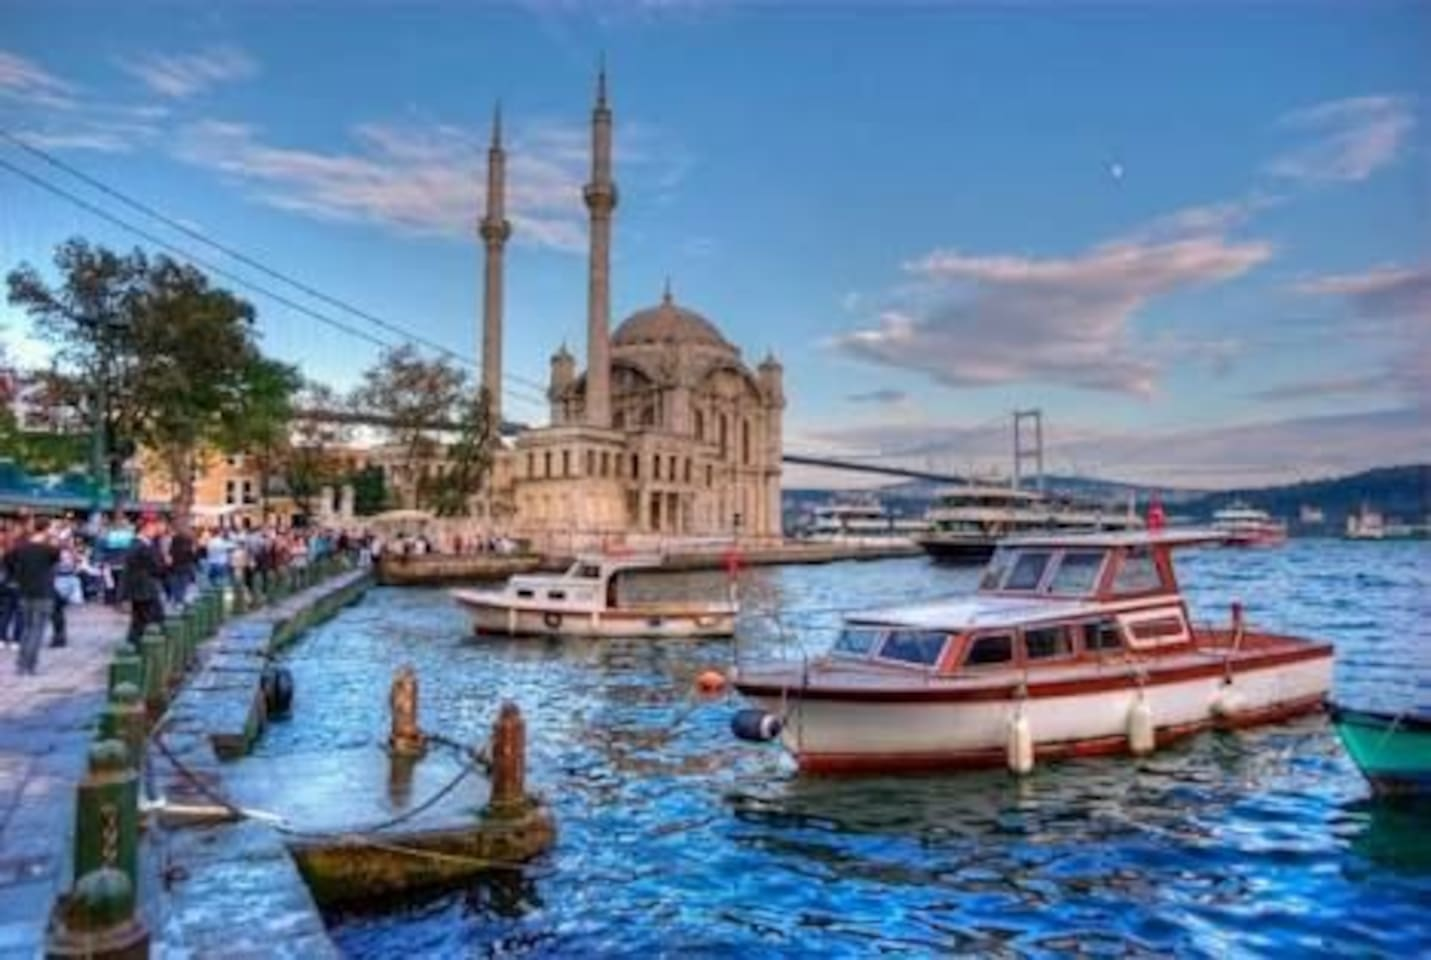 Only 5 minutes walking distance to Ortaköy Square